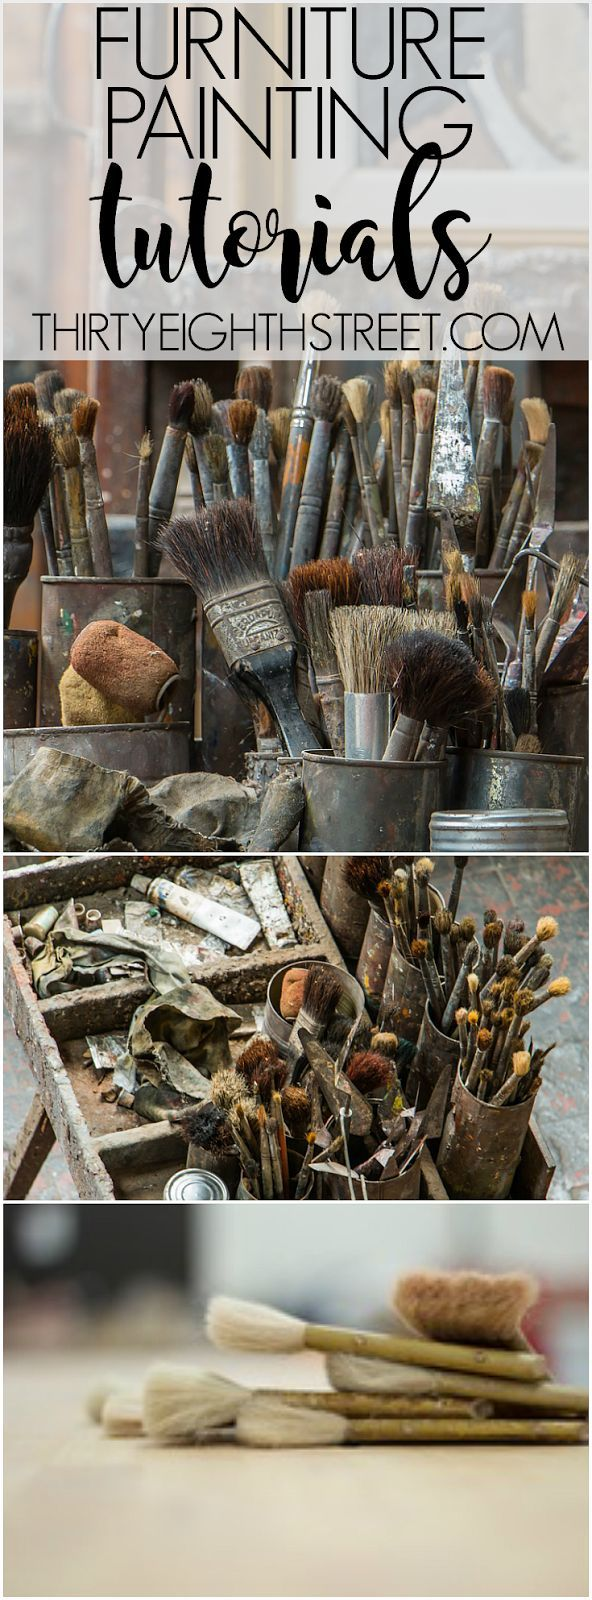 Painting Furniture Resource! Awesome Repurposed Furniture Tutorials and Tips For...